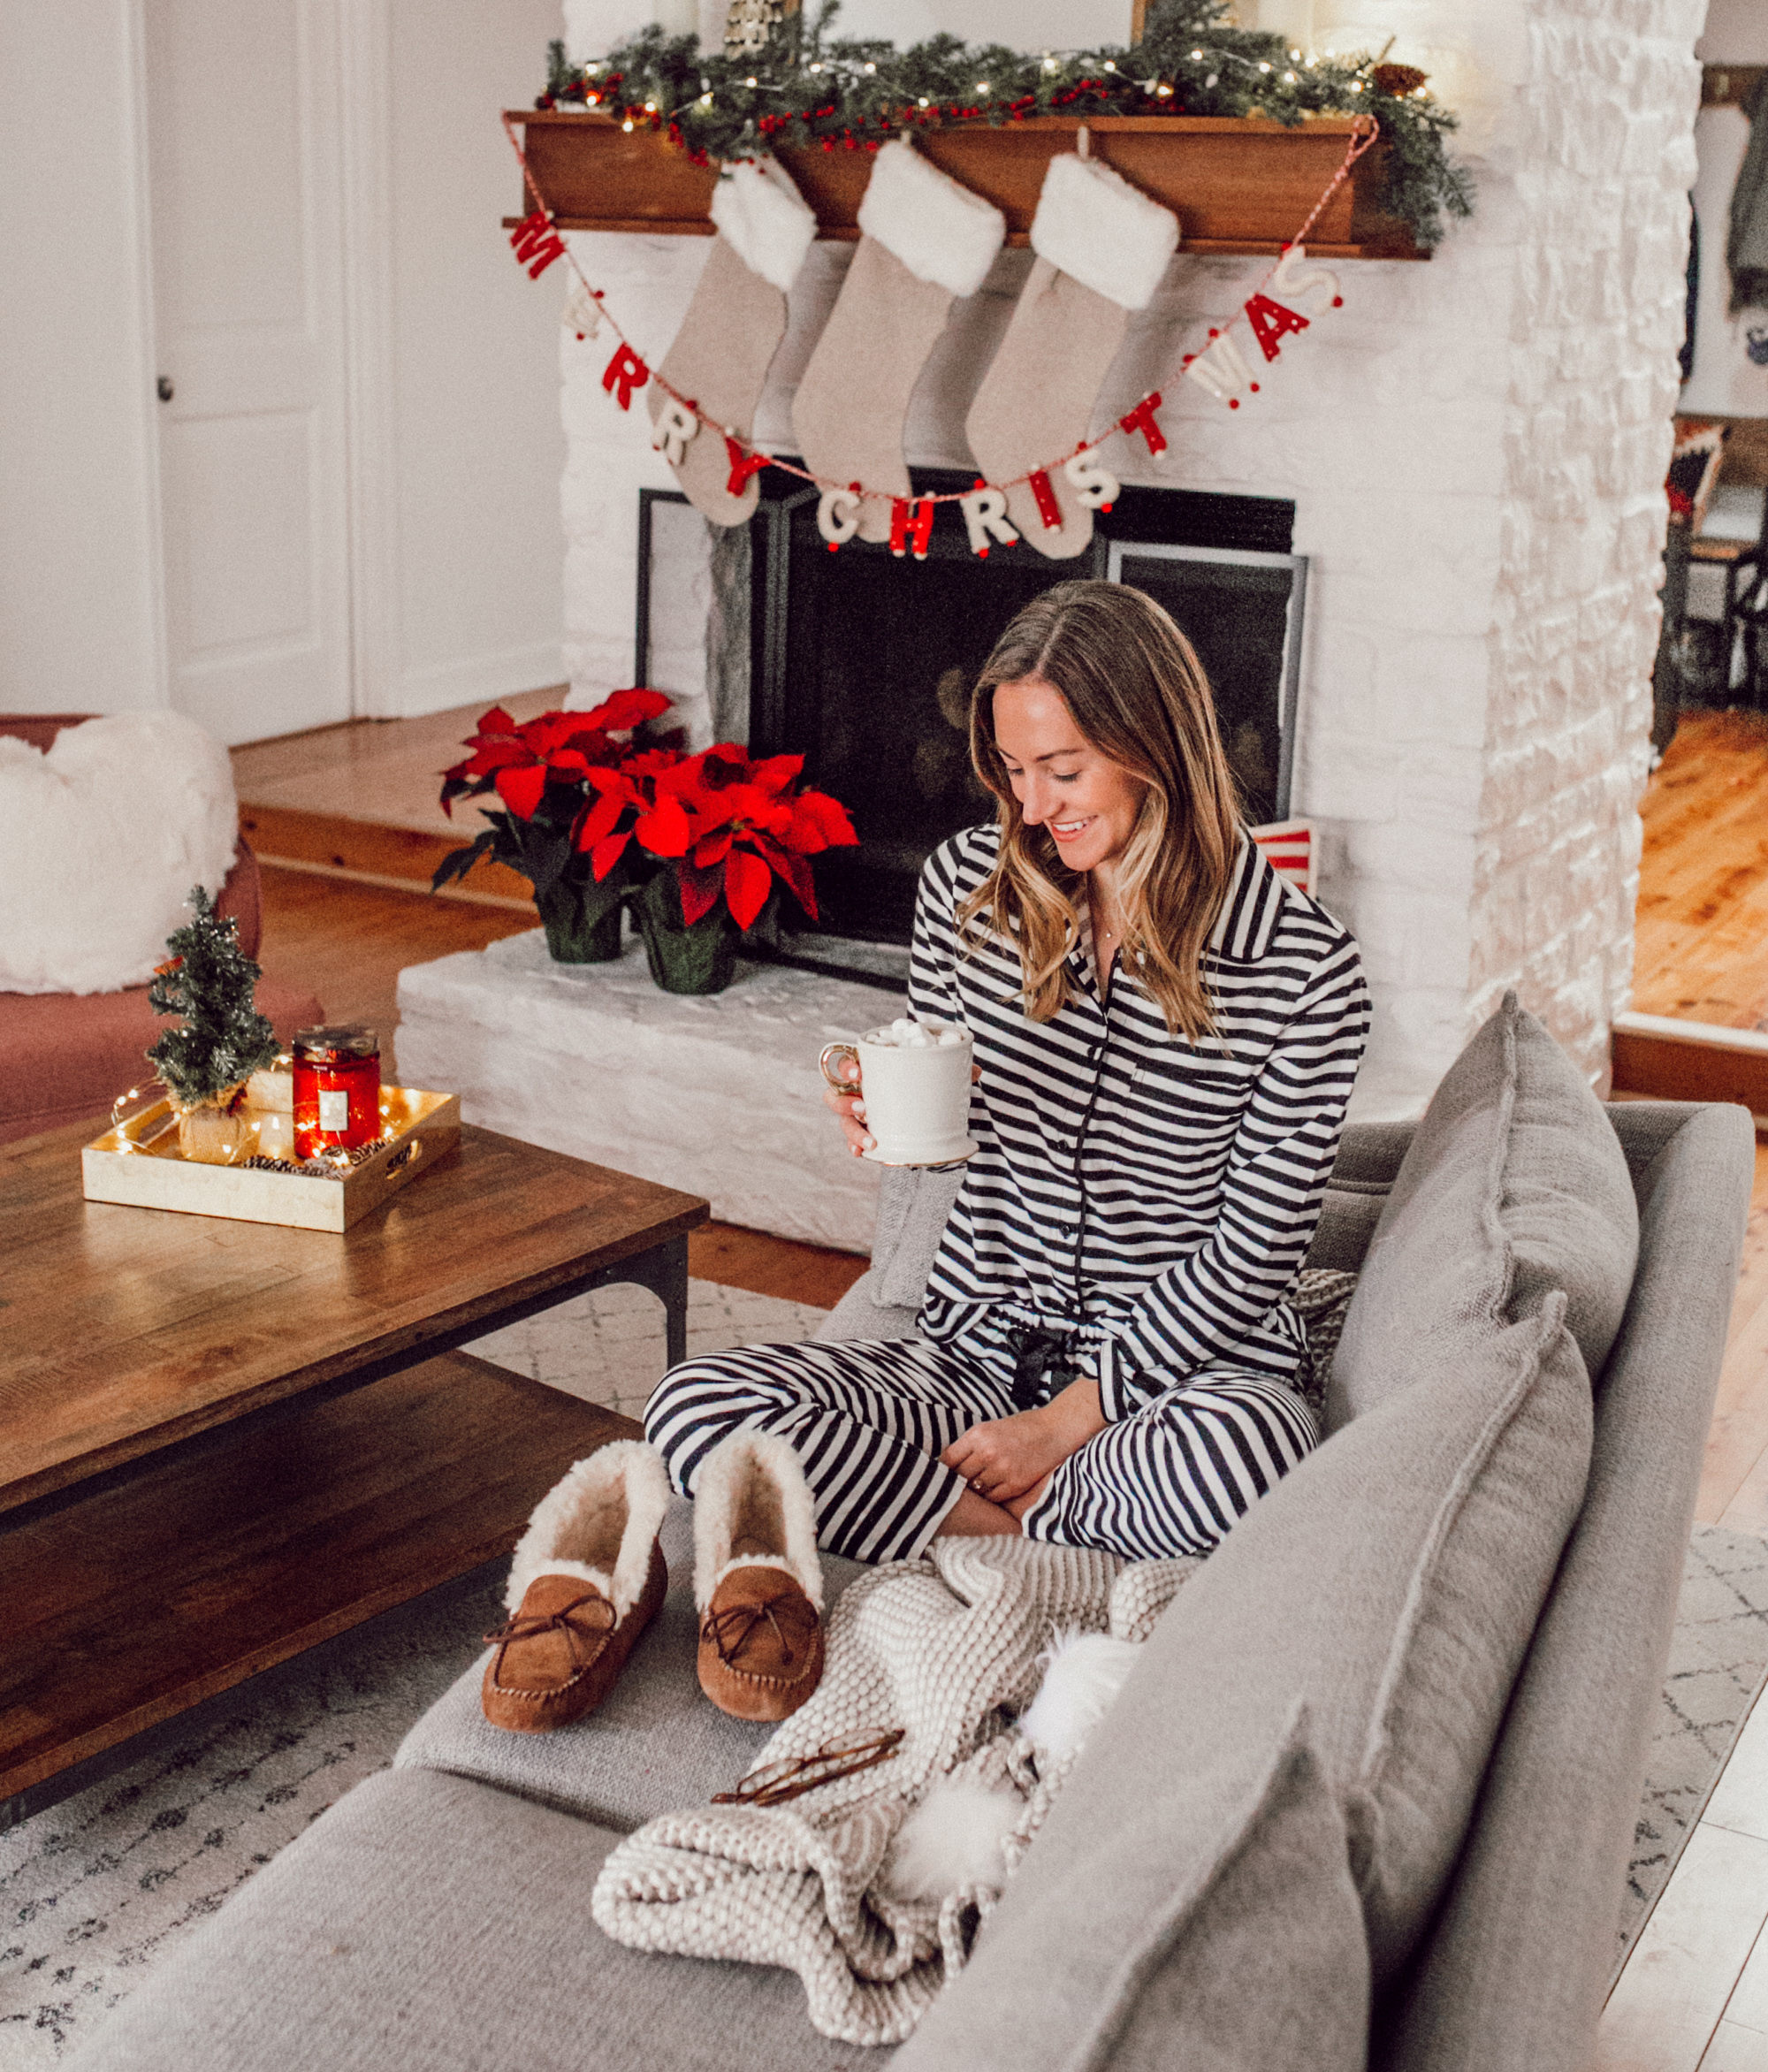 livvyland-blog-olivia-watson-ugg-slippers-cozy-morning-home-kate-spade-striped-pajamas-10